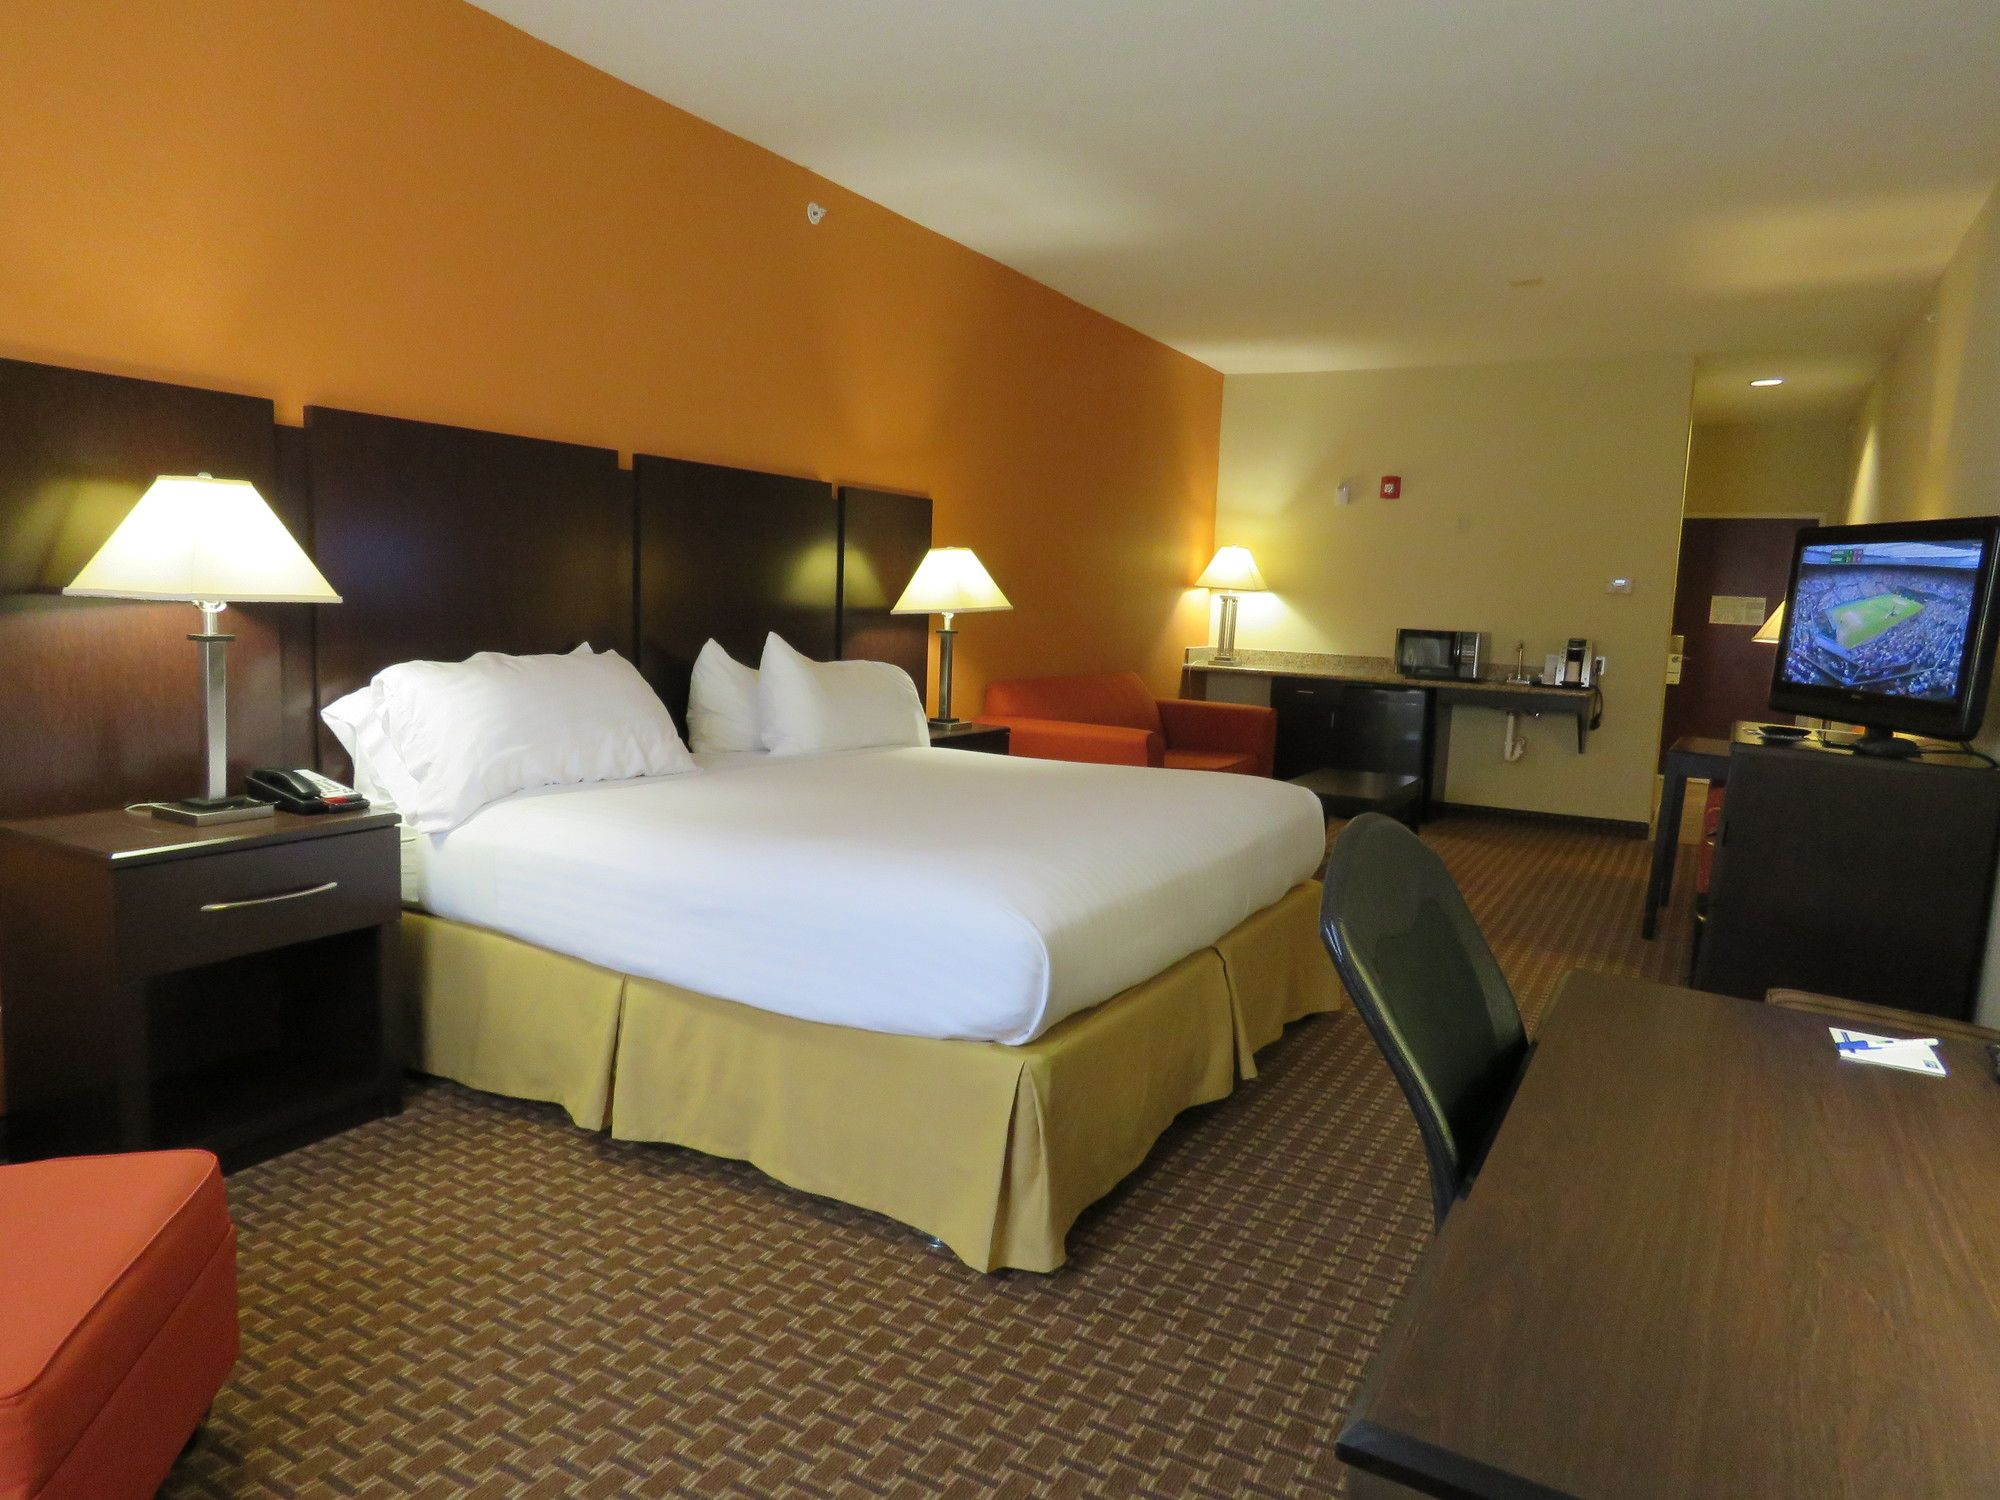 Bartlesville Hotel Coupons for Bartlesville, Oklahoma ...